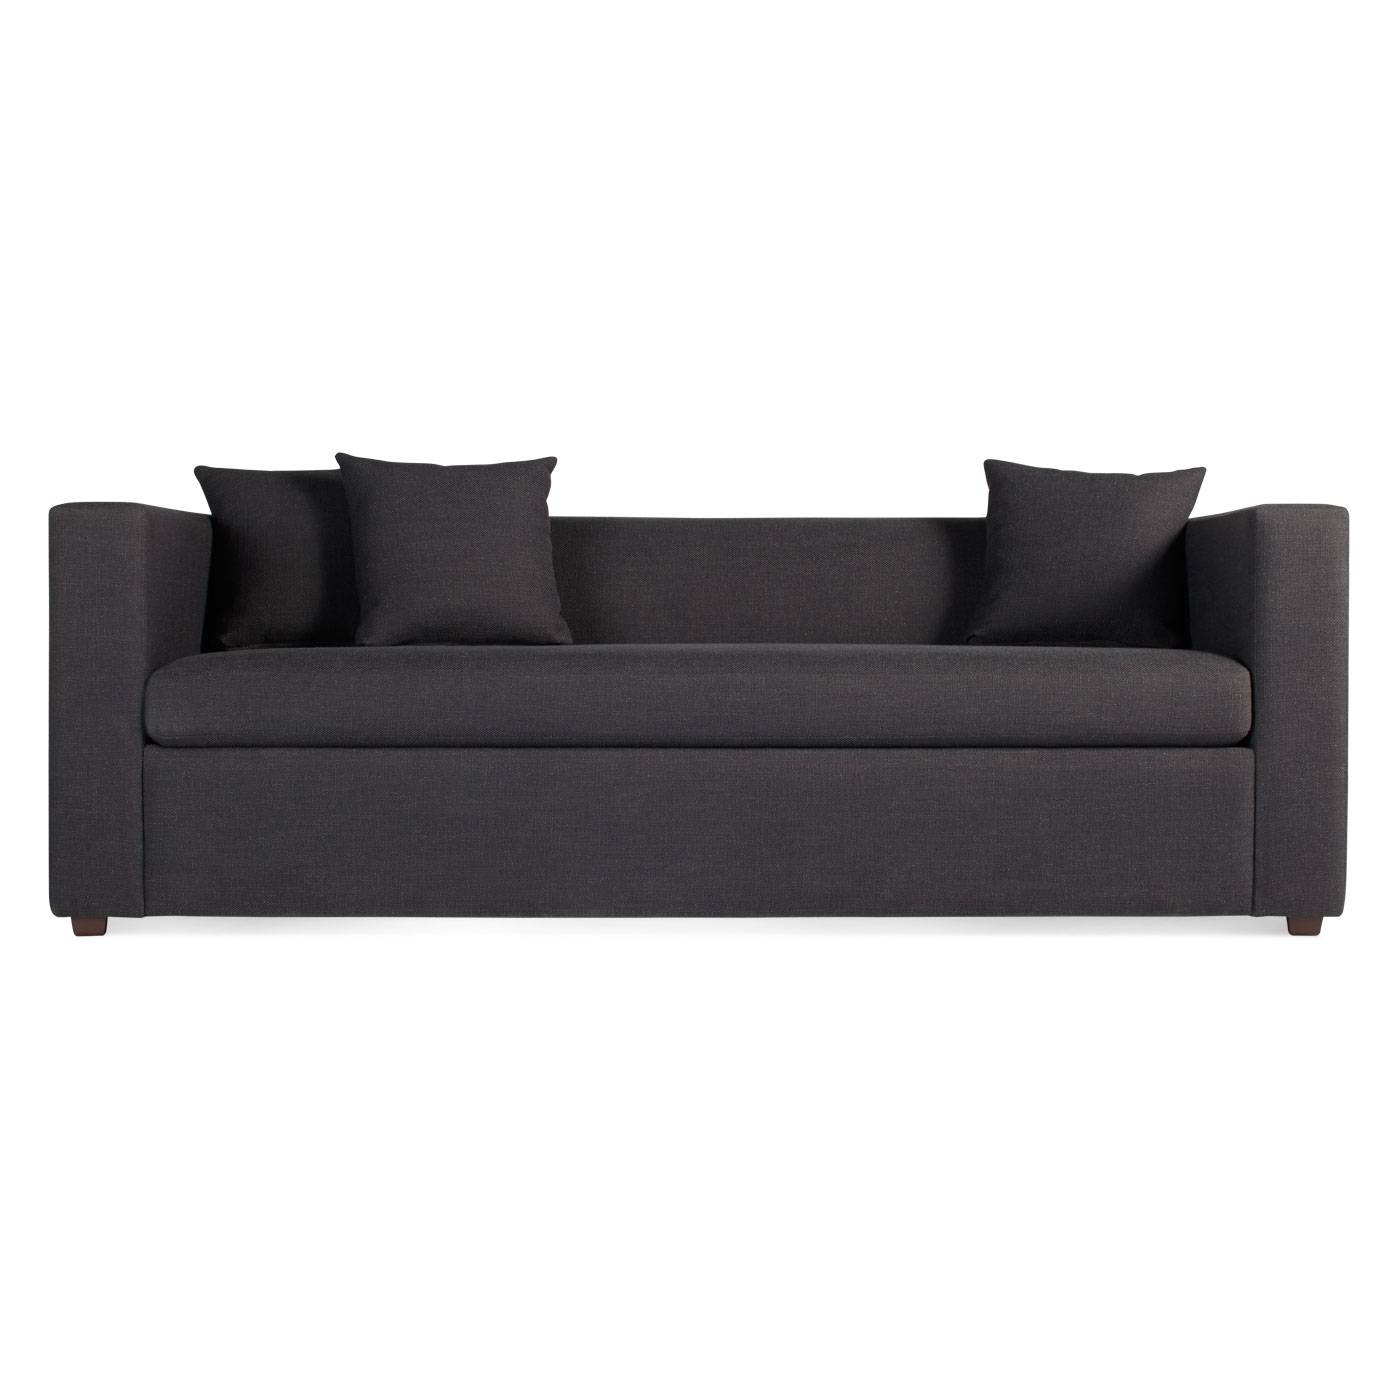 Mono Modern Sleeper Sofa - Single Cushion Sofa | Blu Dot with Cushion Sofa Beds (Image 14 of 30)